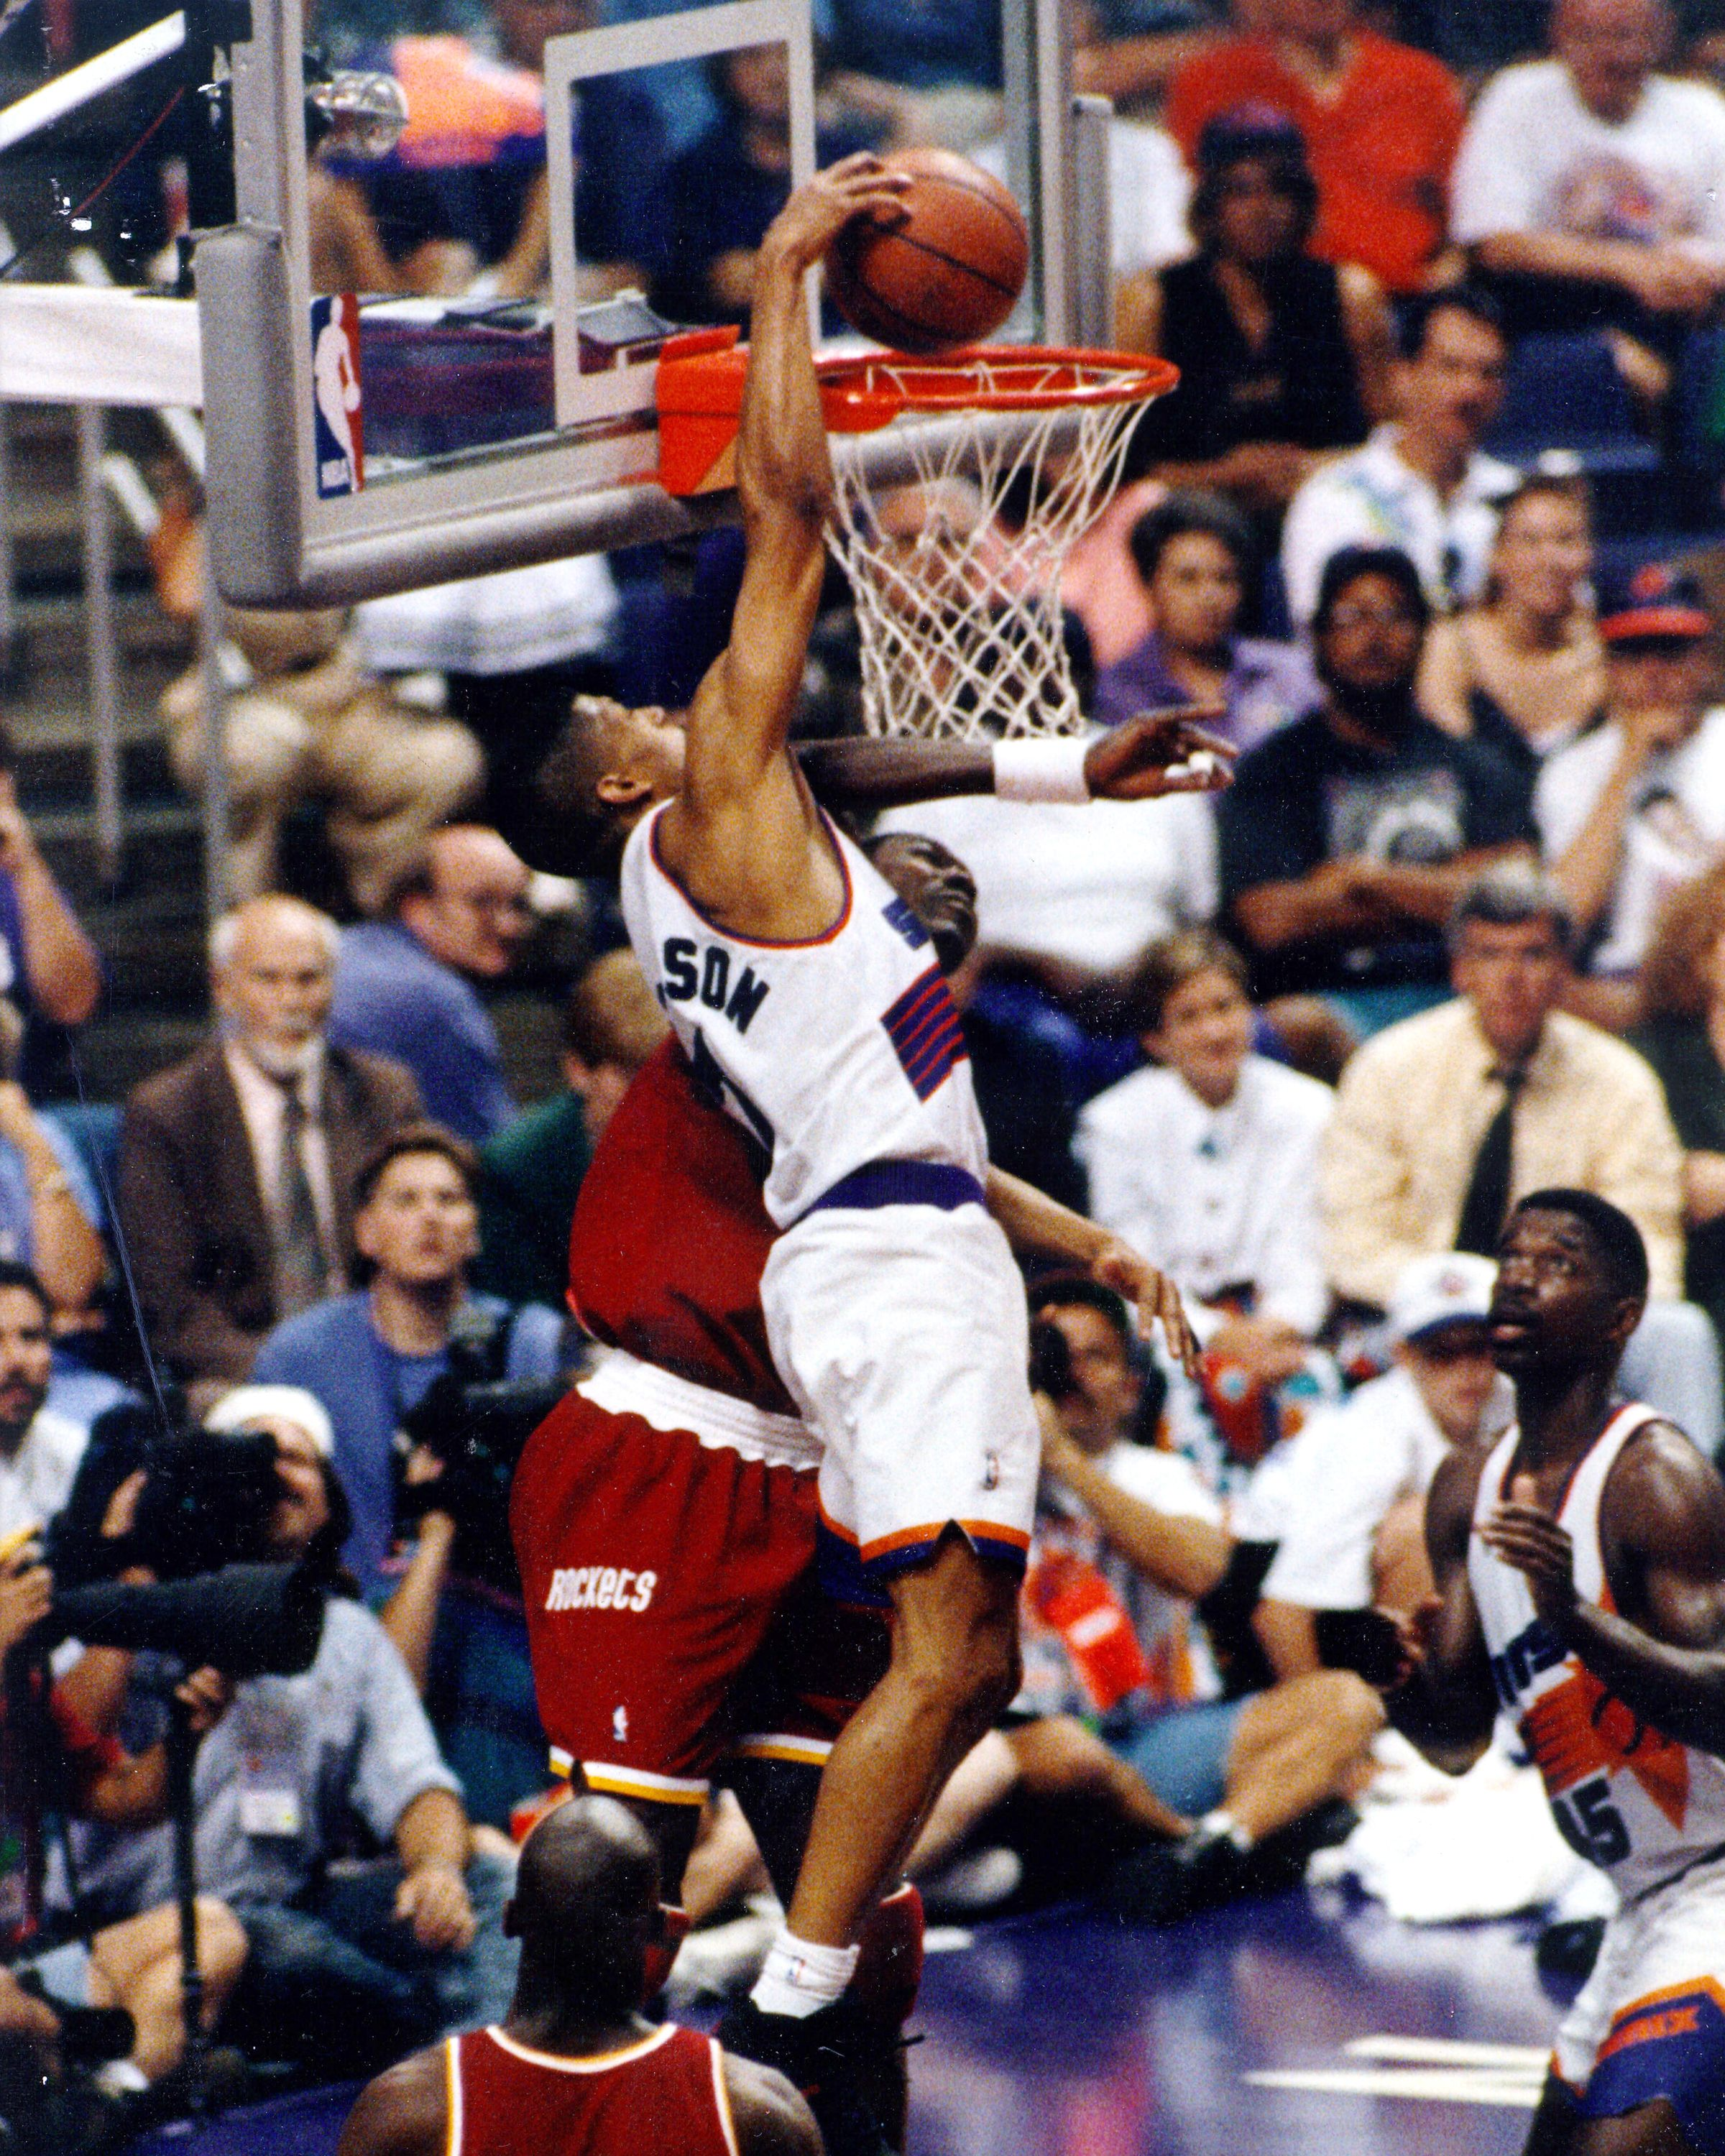 Kevin Johnson dunks Hakeem Olajuwon